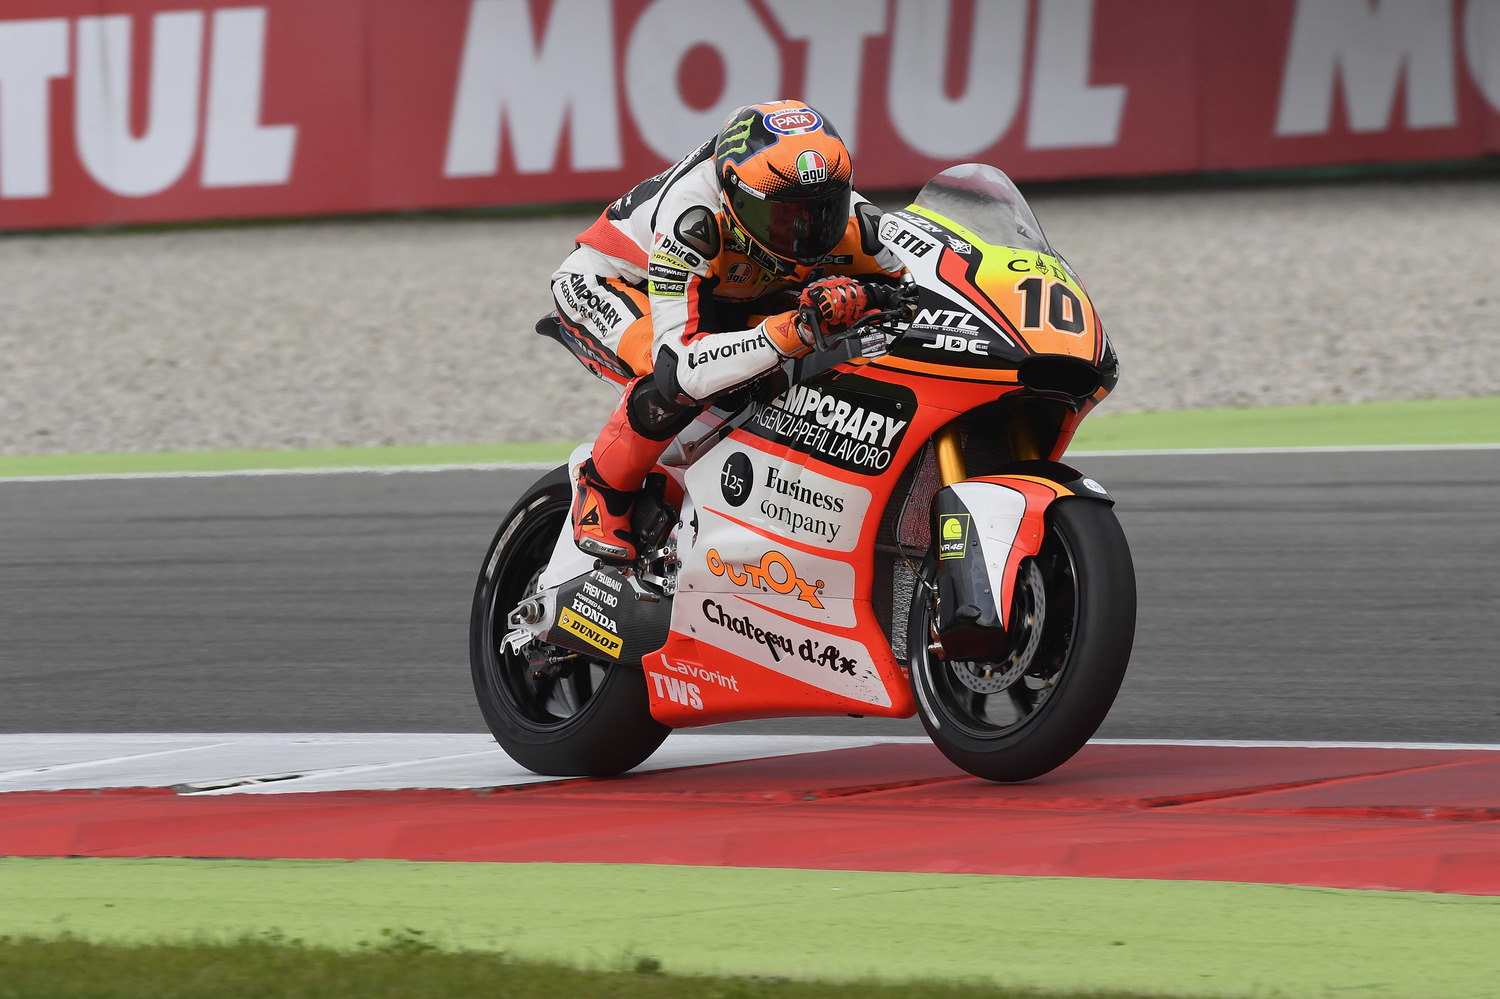 Good day of practice for Baldassarri and Marini at Assen